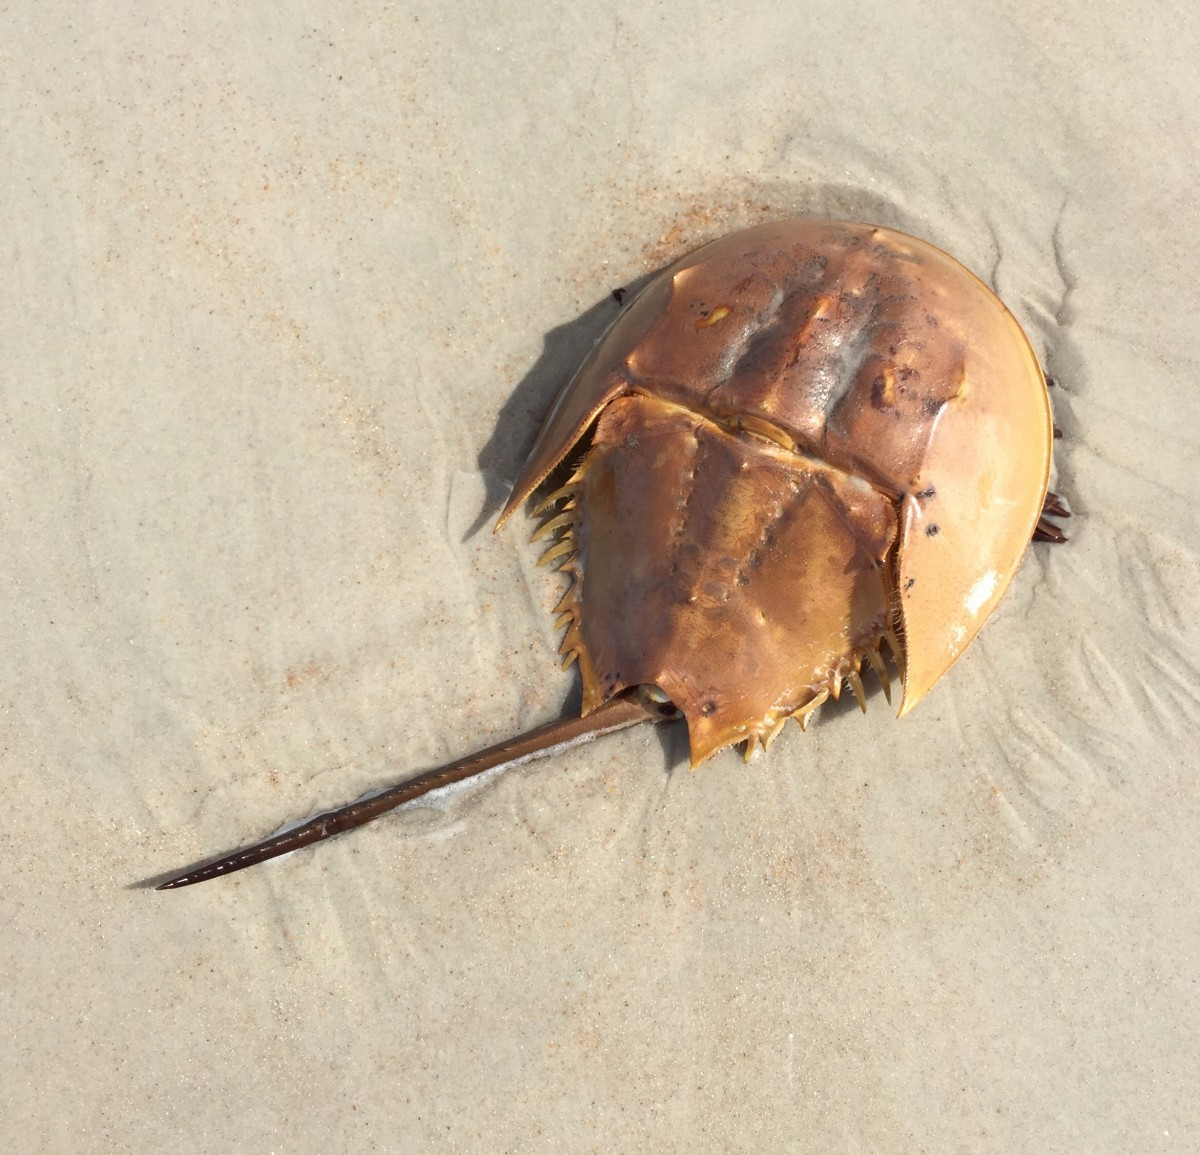 A brown horseshoe crab in the sand